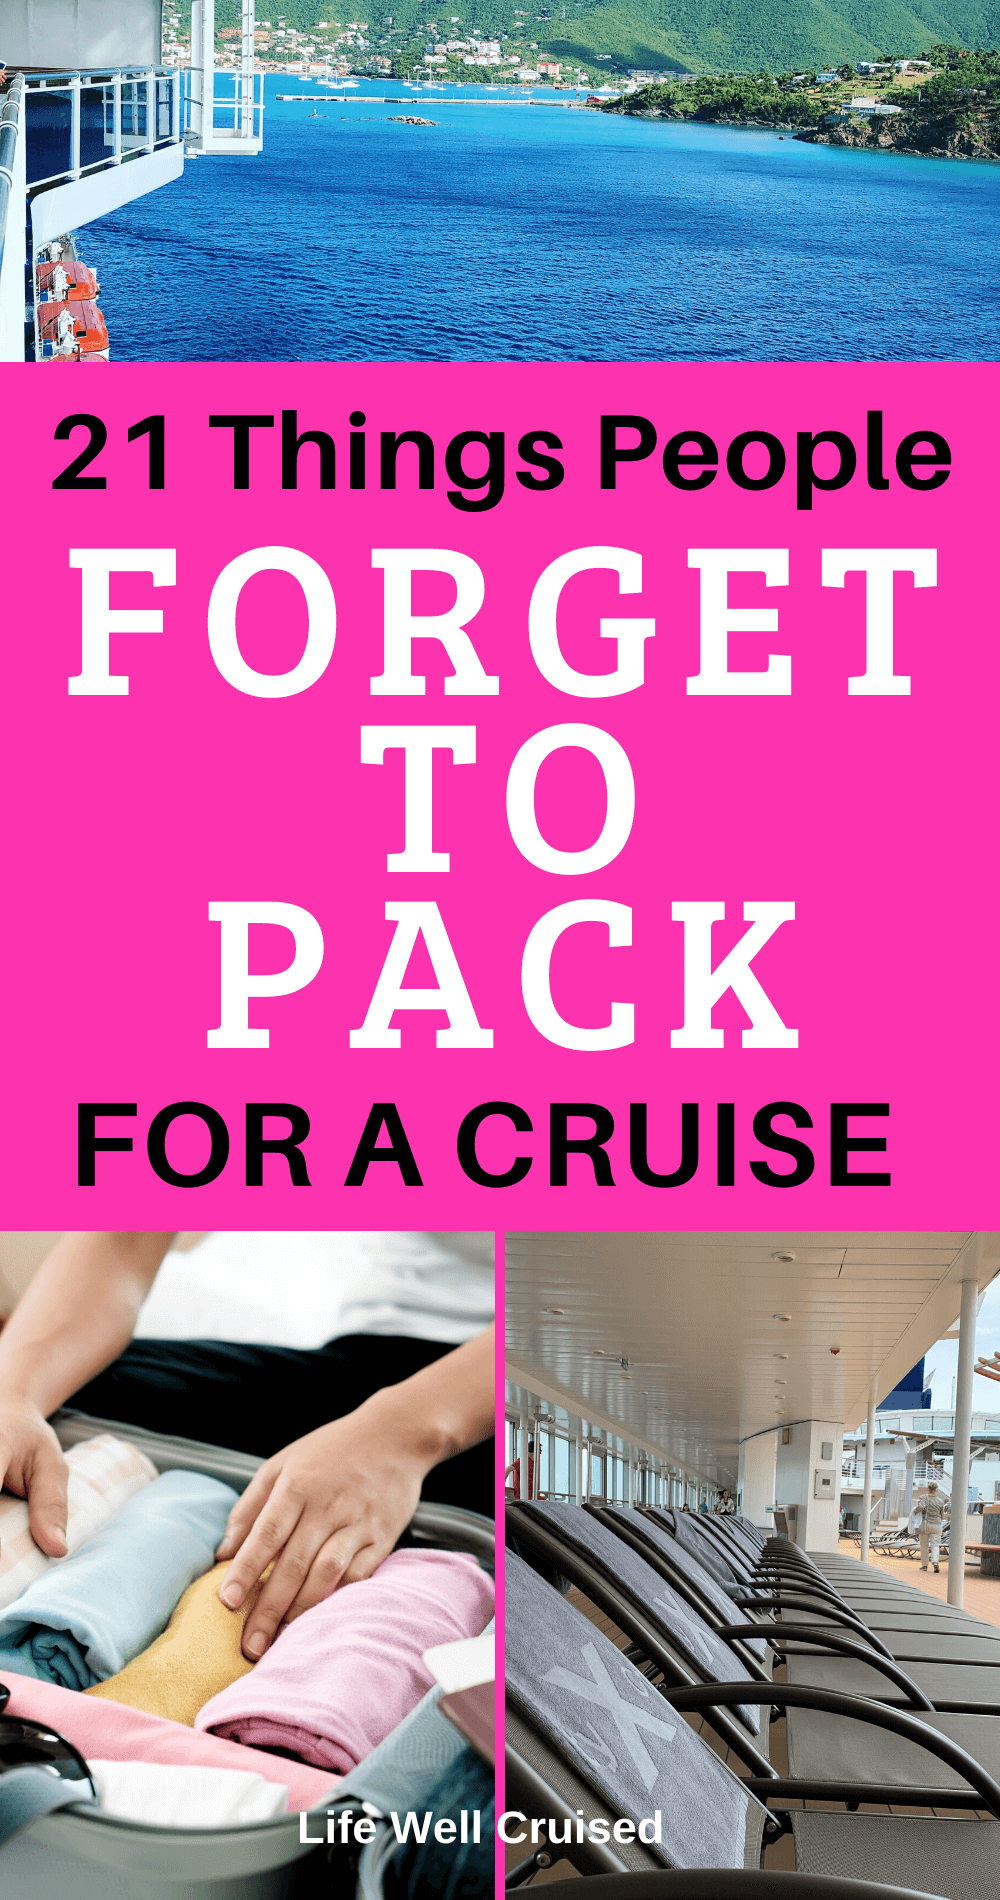 21 Things People Forget to Pack for a Cruise (and regret) - Life Well Cruised